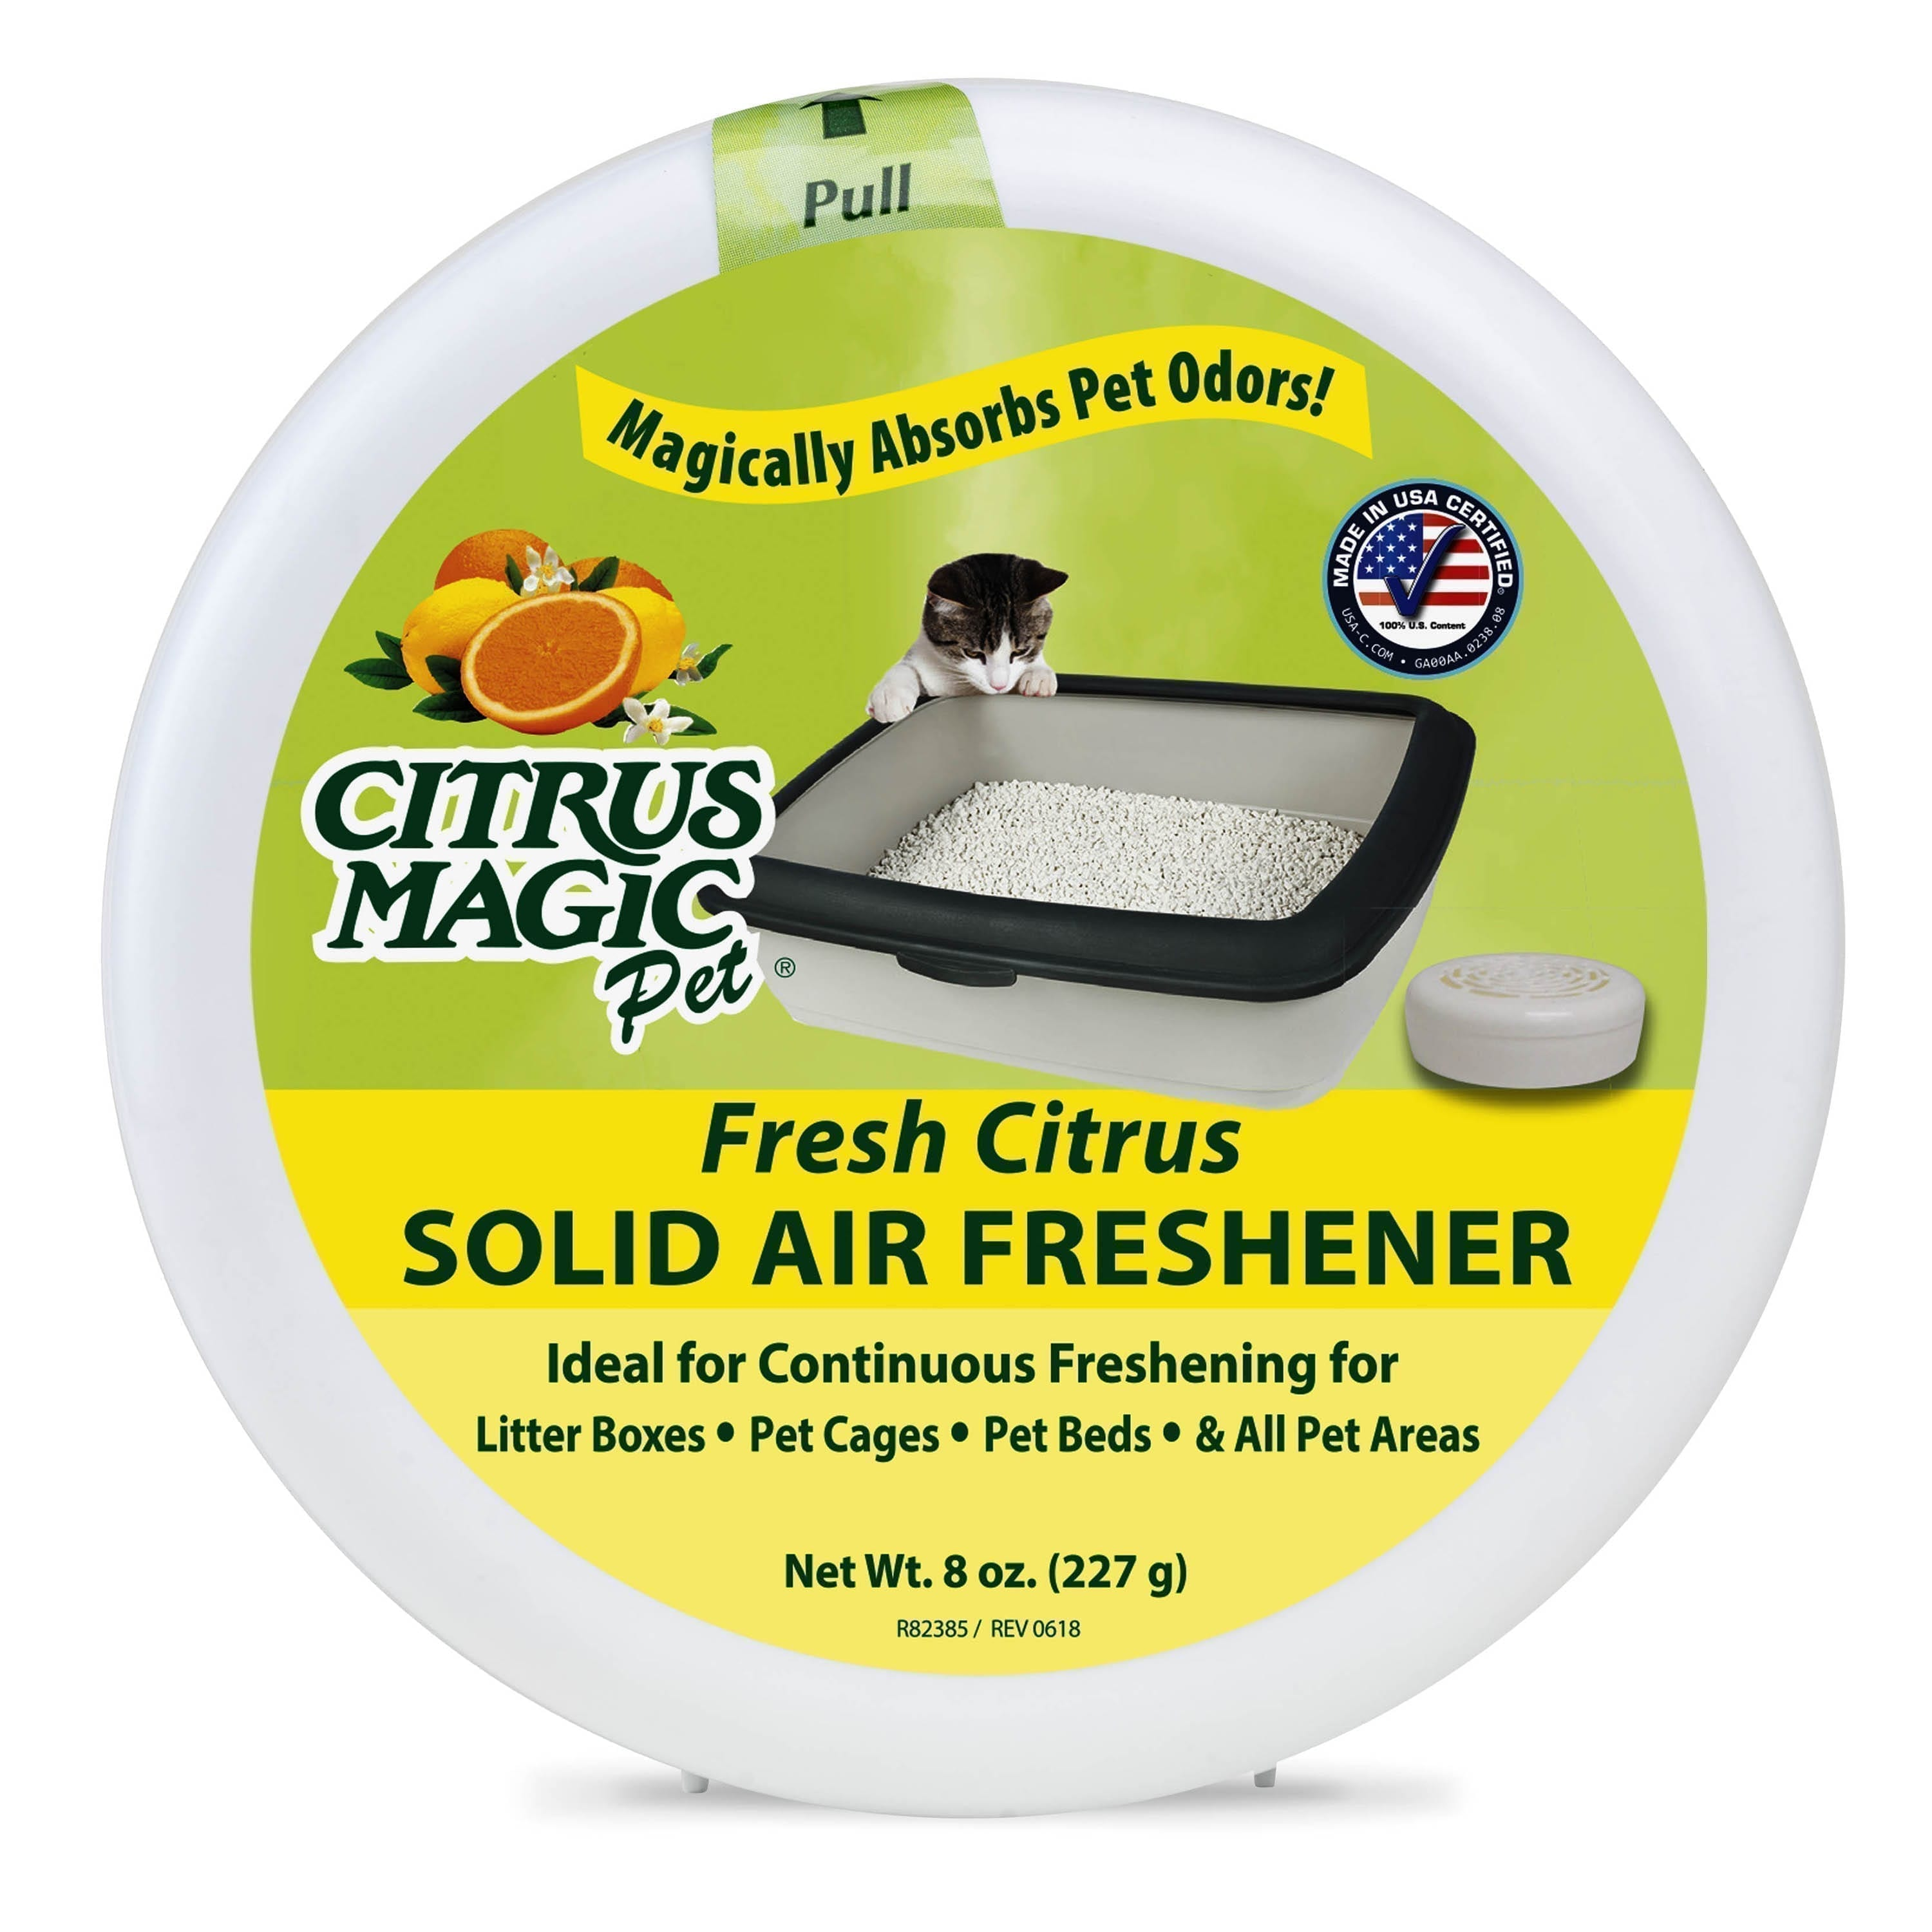 Citrus Magic Pet Odor Absorbing Solid Air Freshener, Fresh Citrus